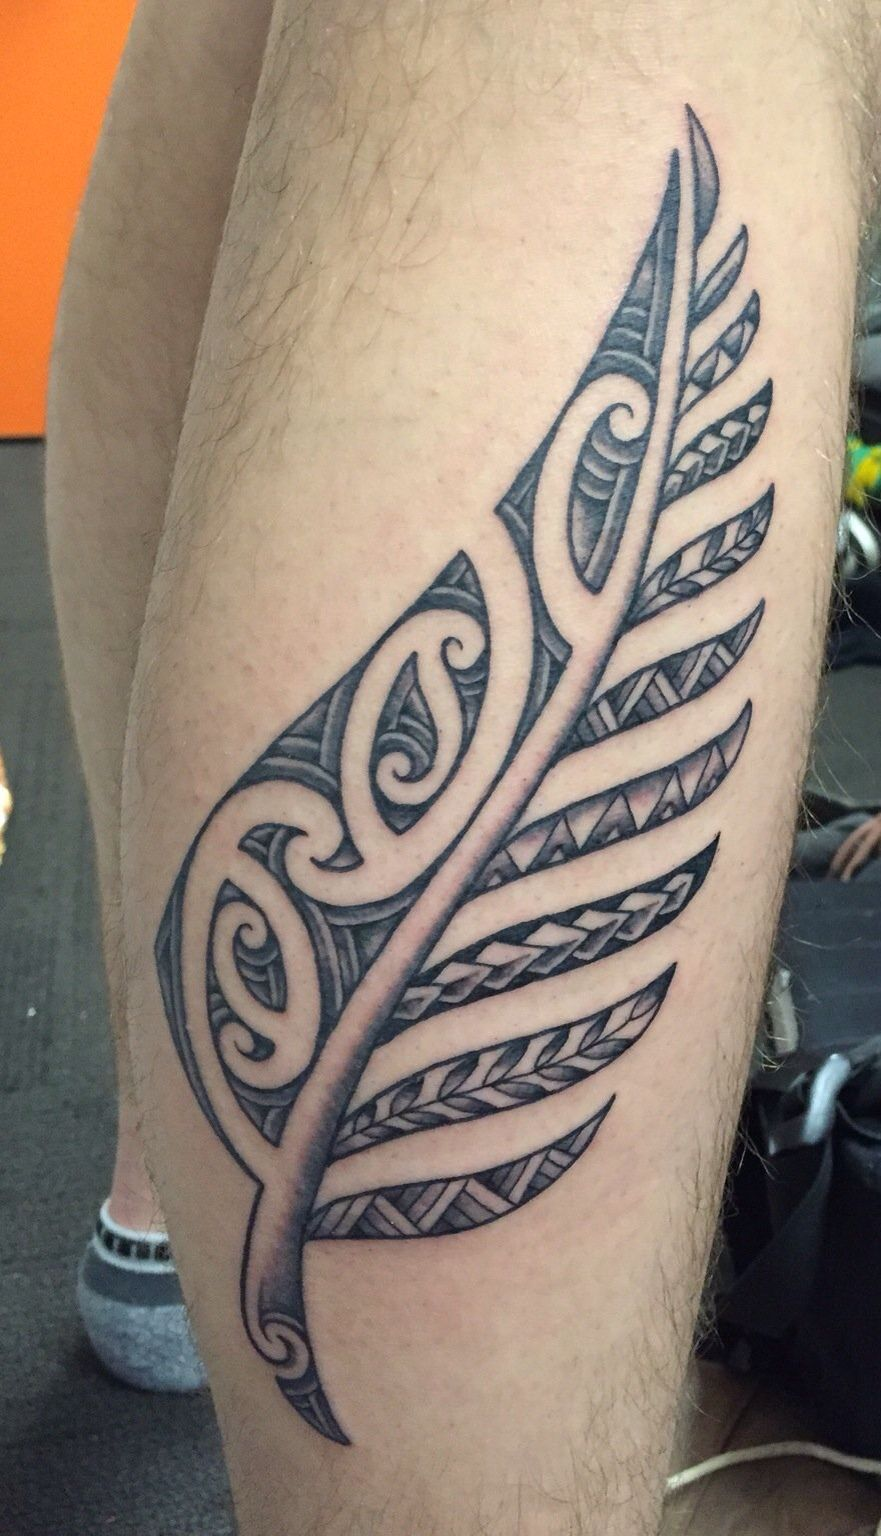 Body Art World Tattoos Maori Tattoo Art And Traditional: Maori Inspired Silver Fern